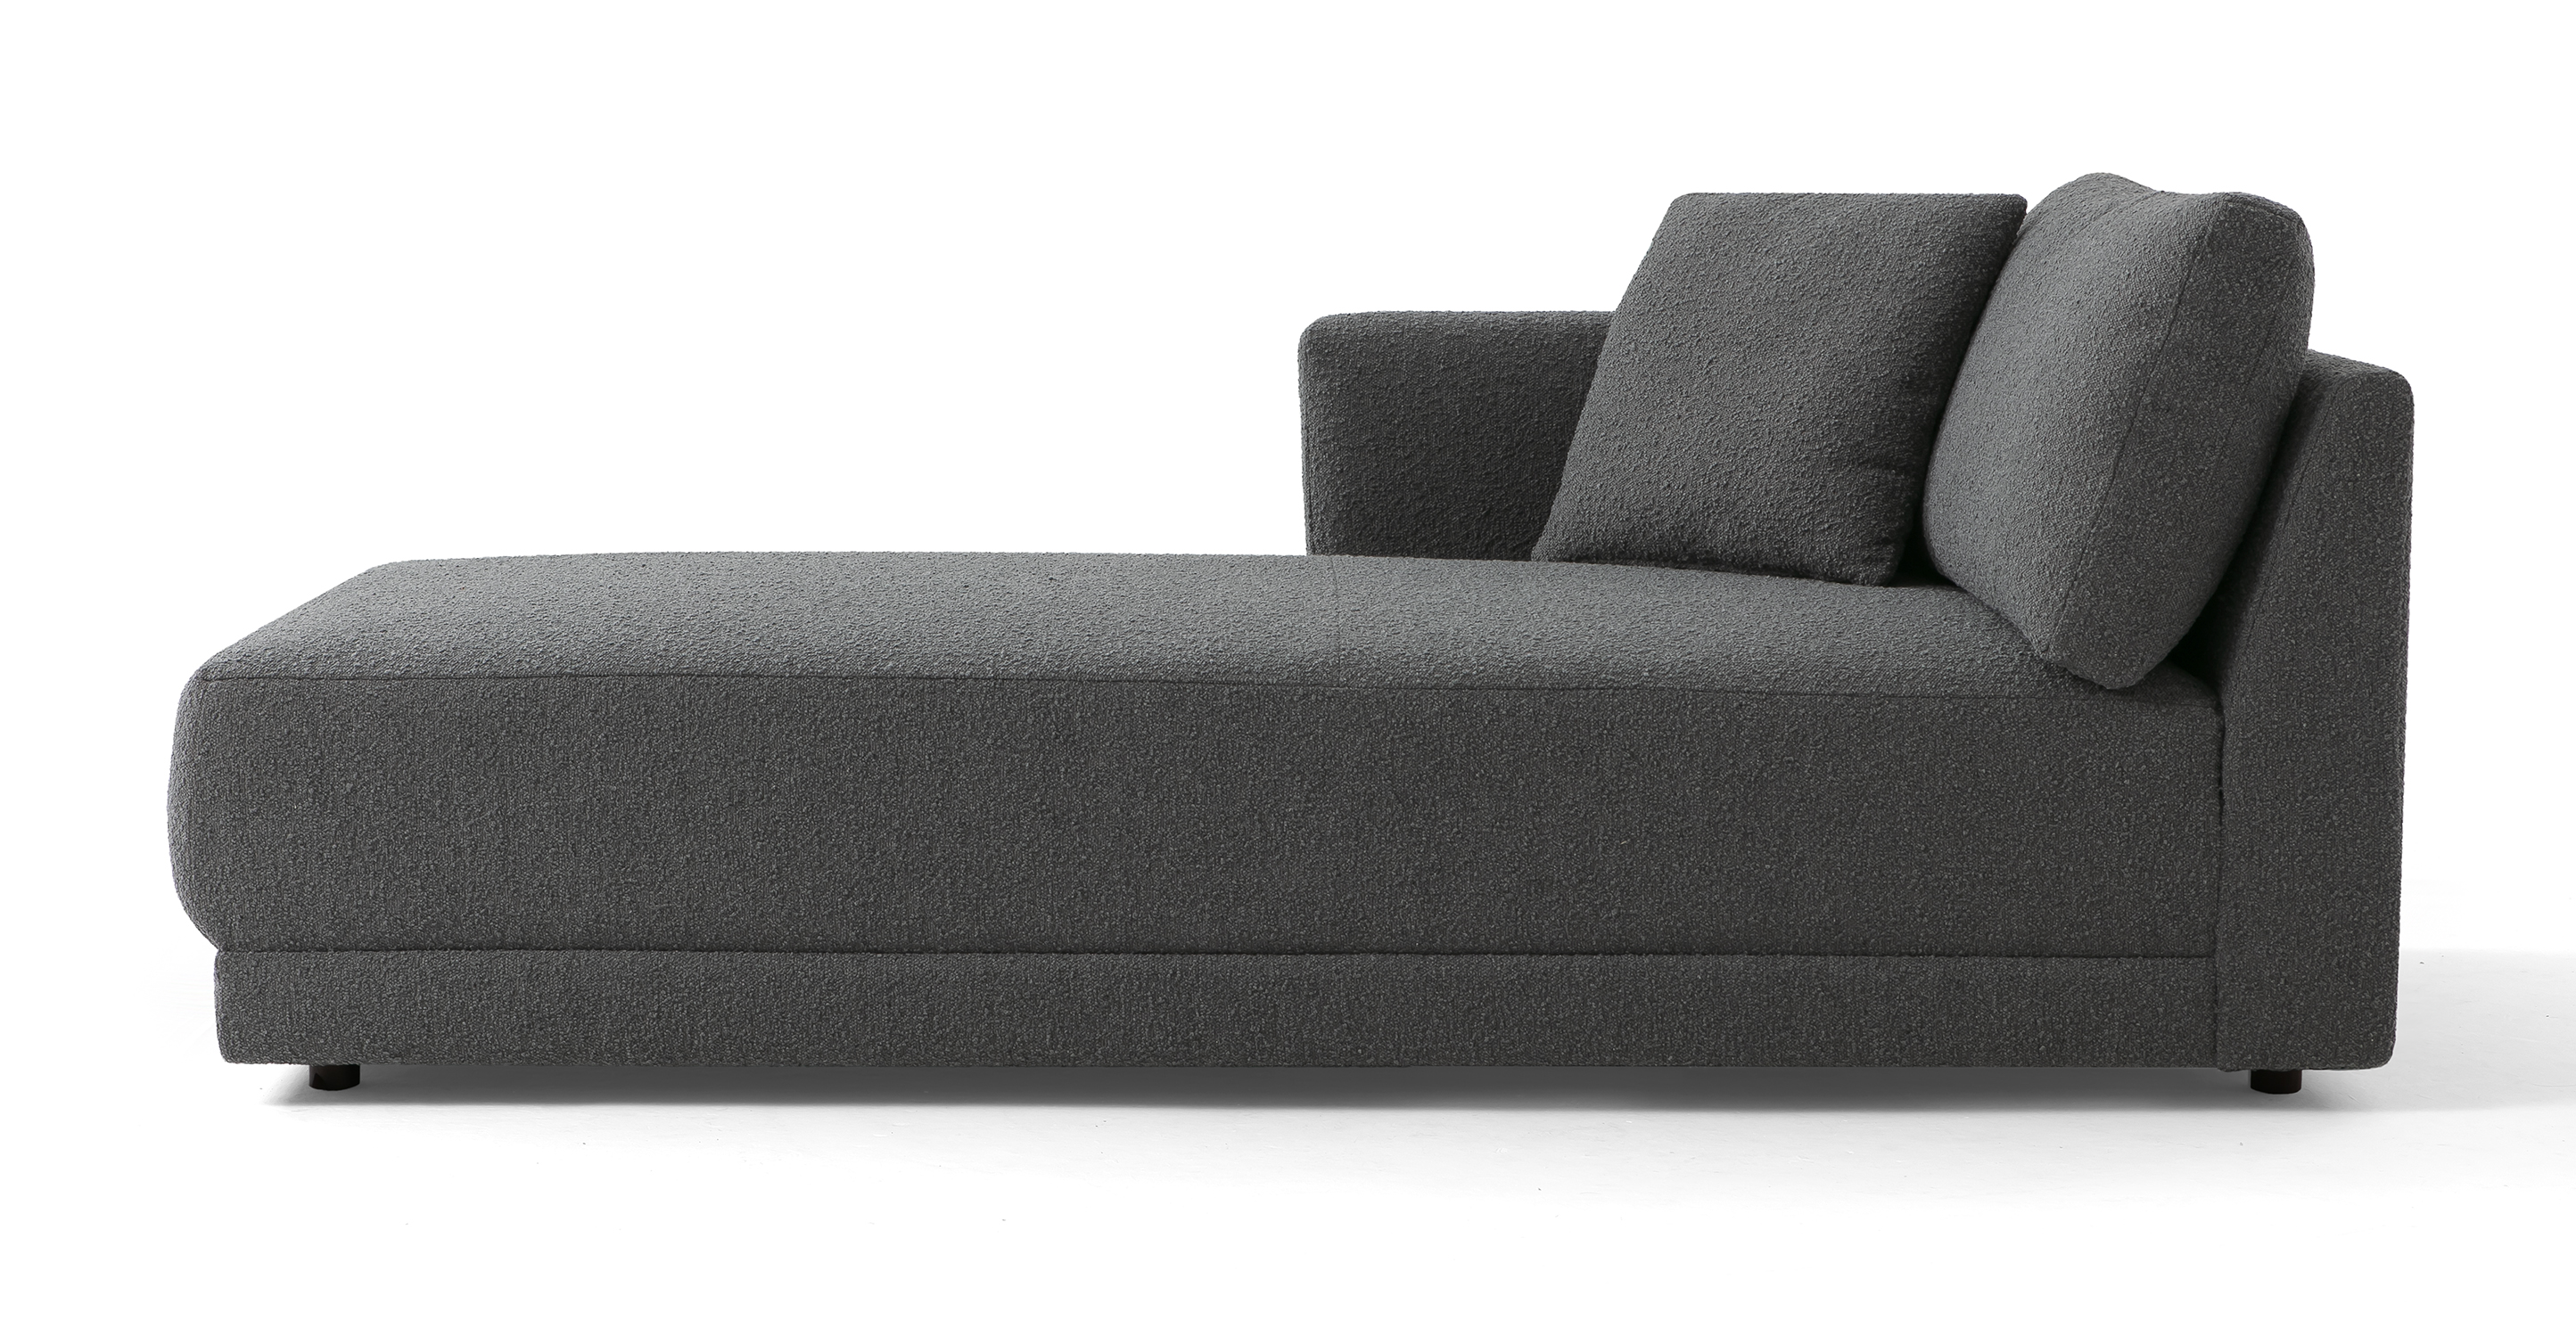 "Domus 39"" Left Chaise Fabric Sofa, Gris Boucle"